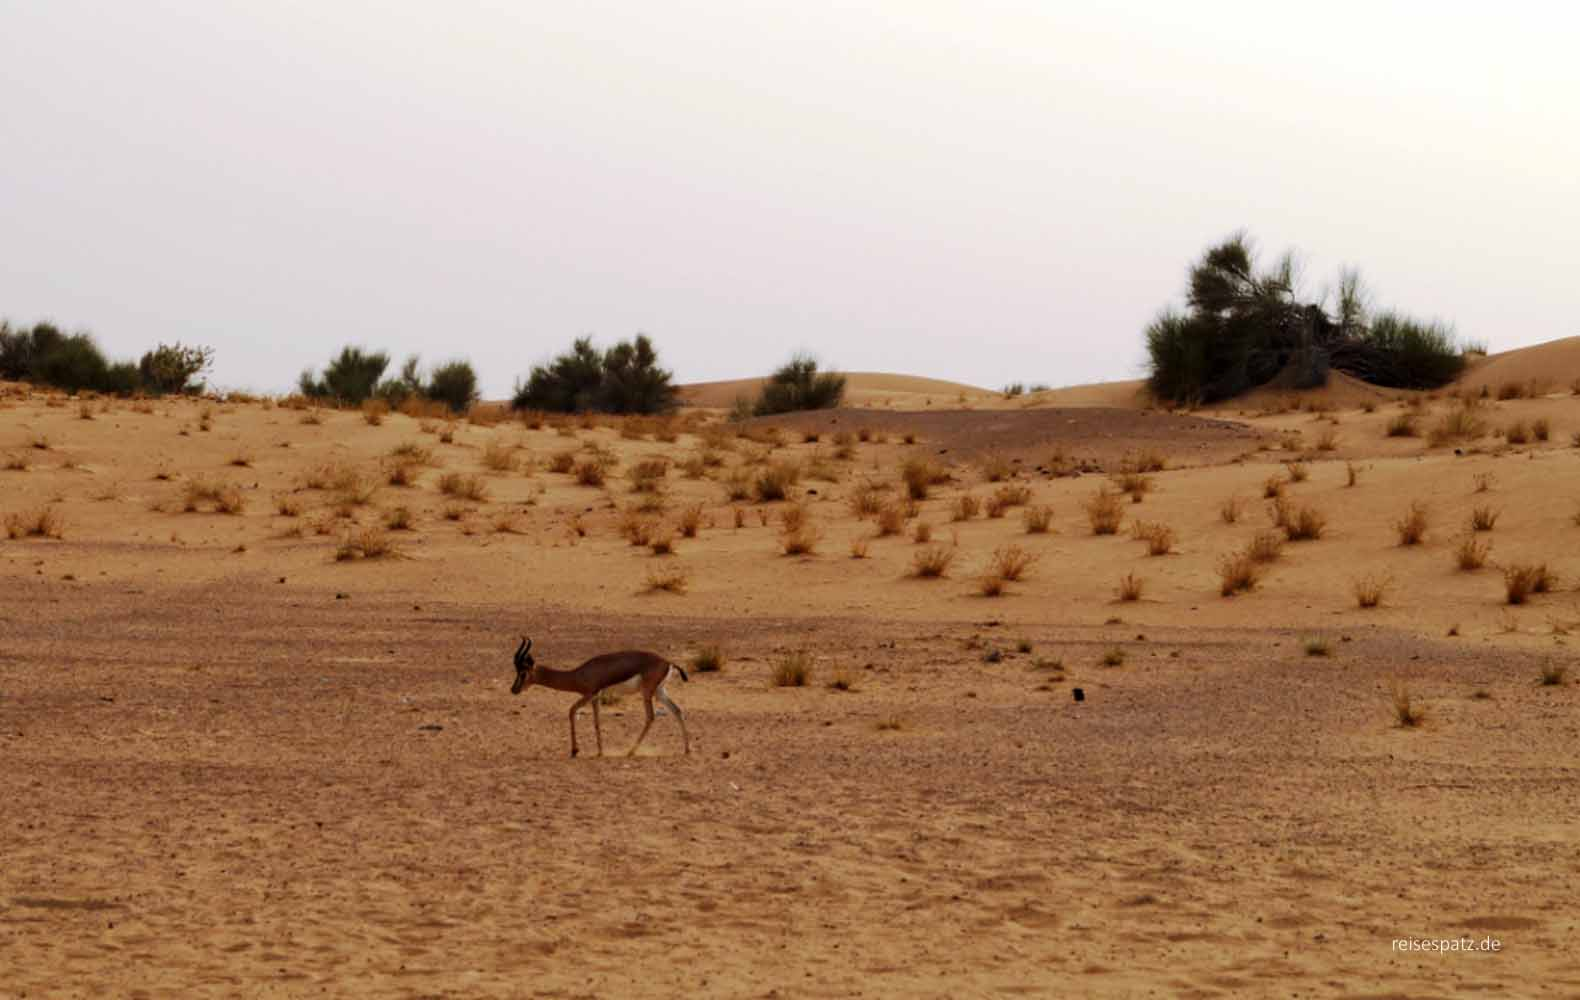 Gazelle in Dubai